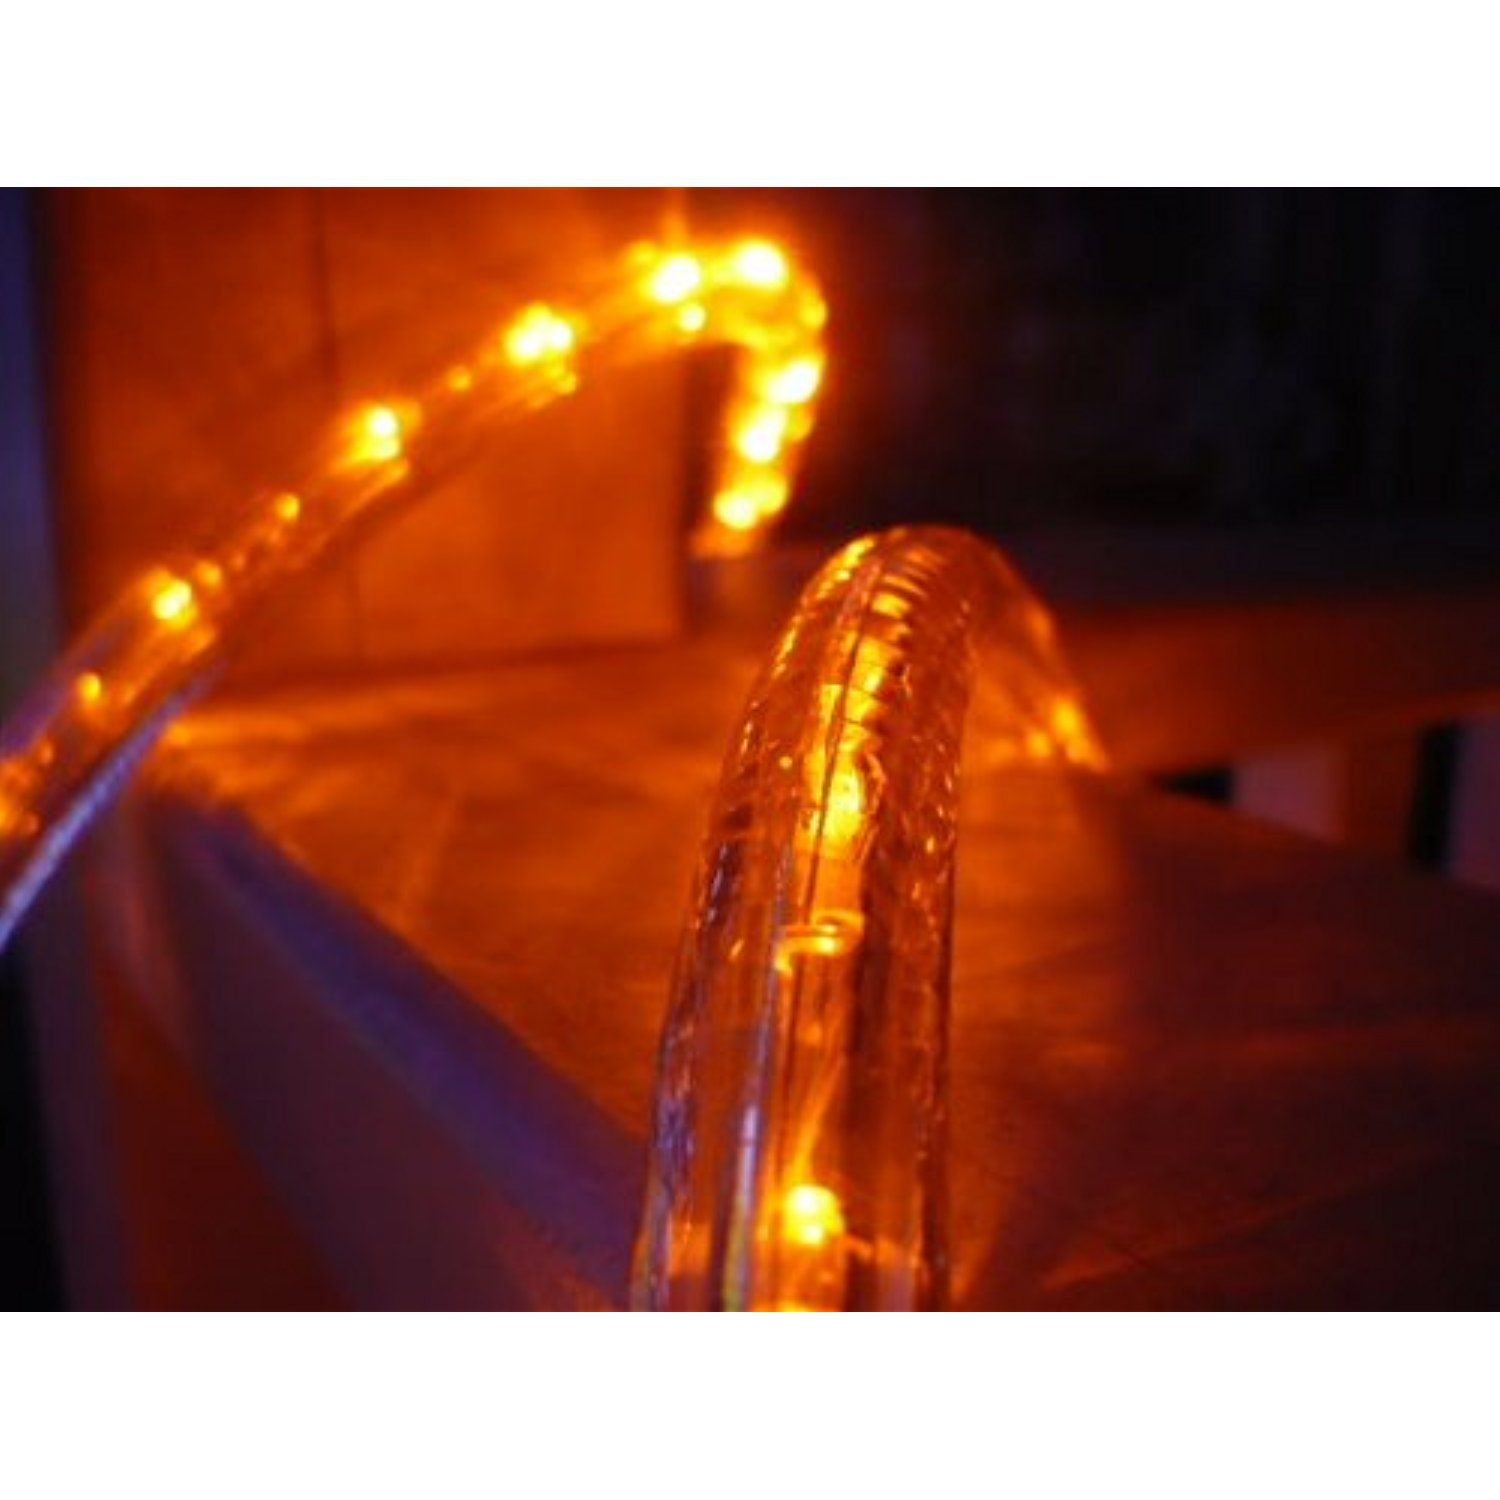 Cbconcept 12v lr18ft o low voltage 12v orange 18 feet 2 wire 12 cbconcept orange 18 feet 12 led rope light 10 led spacing christmas lighting indoor outdoor rope lighting details can be found by clicking on the image aloadofball Image collections